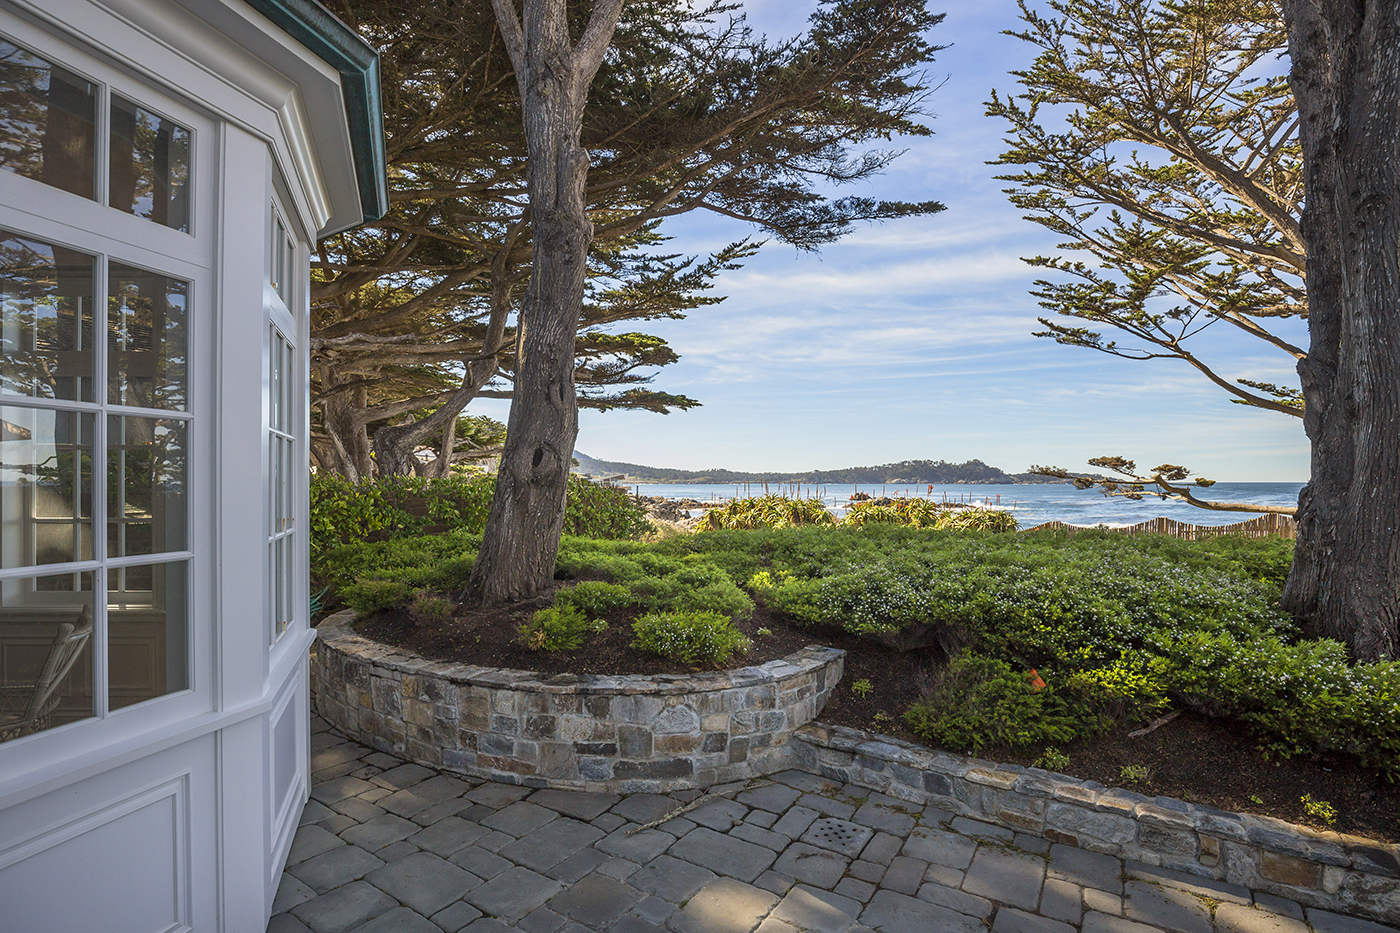 8 Ocean View - panelled bay window with view towards pt lobos.jpg